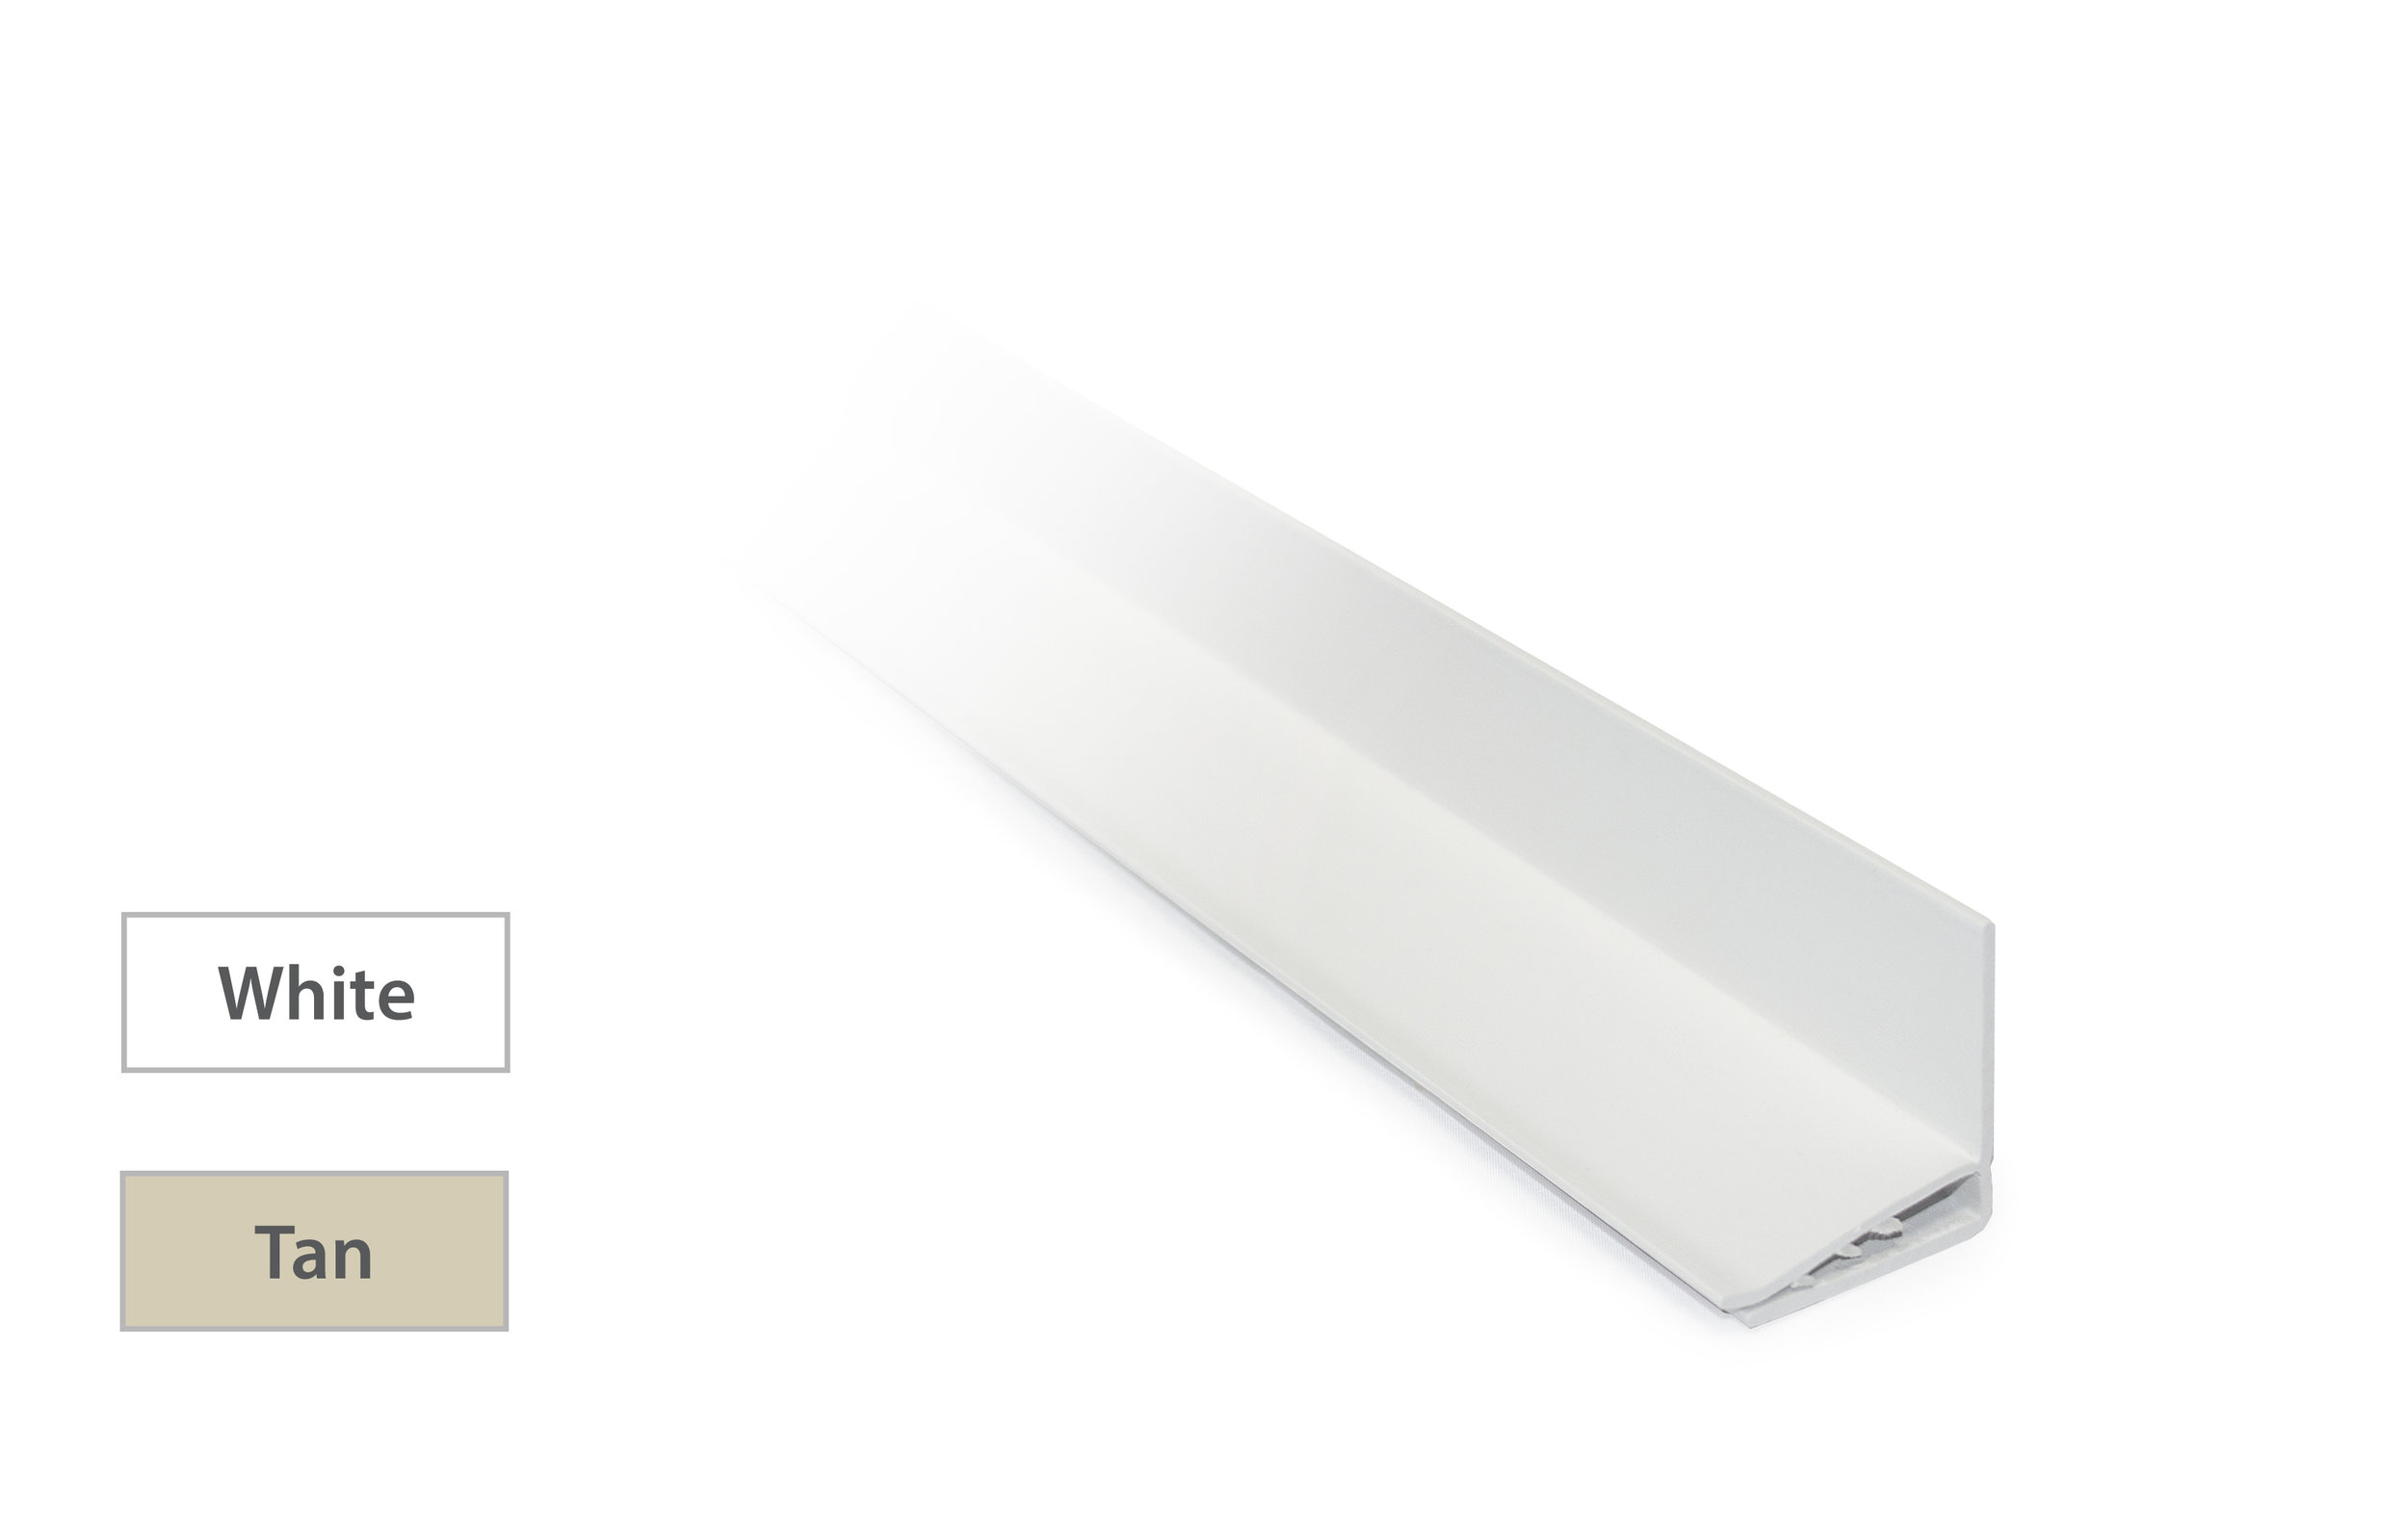 Edge Trim - Provides a finished sealed edgeConceals raw cut edge on first and last channelAvailable in White or Tan